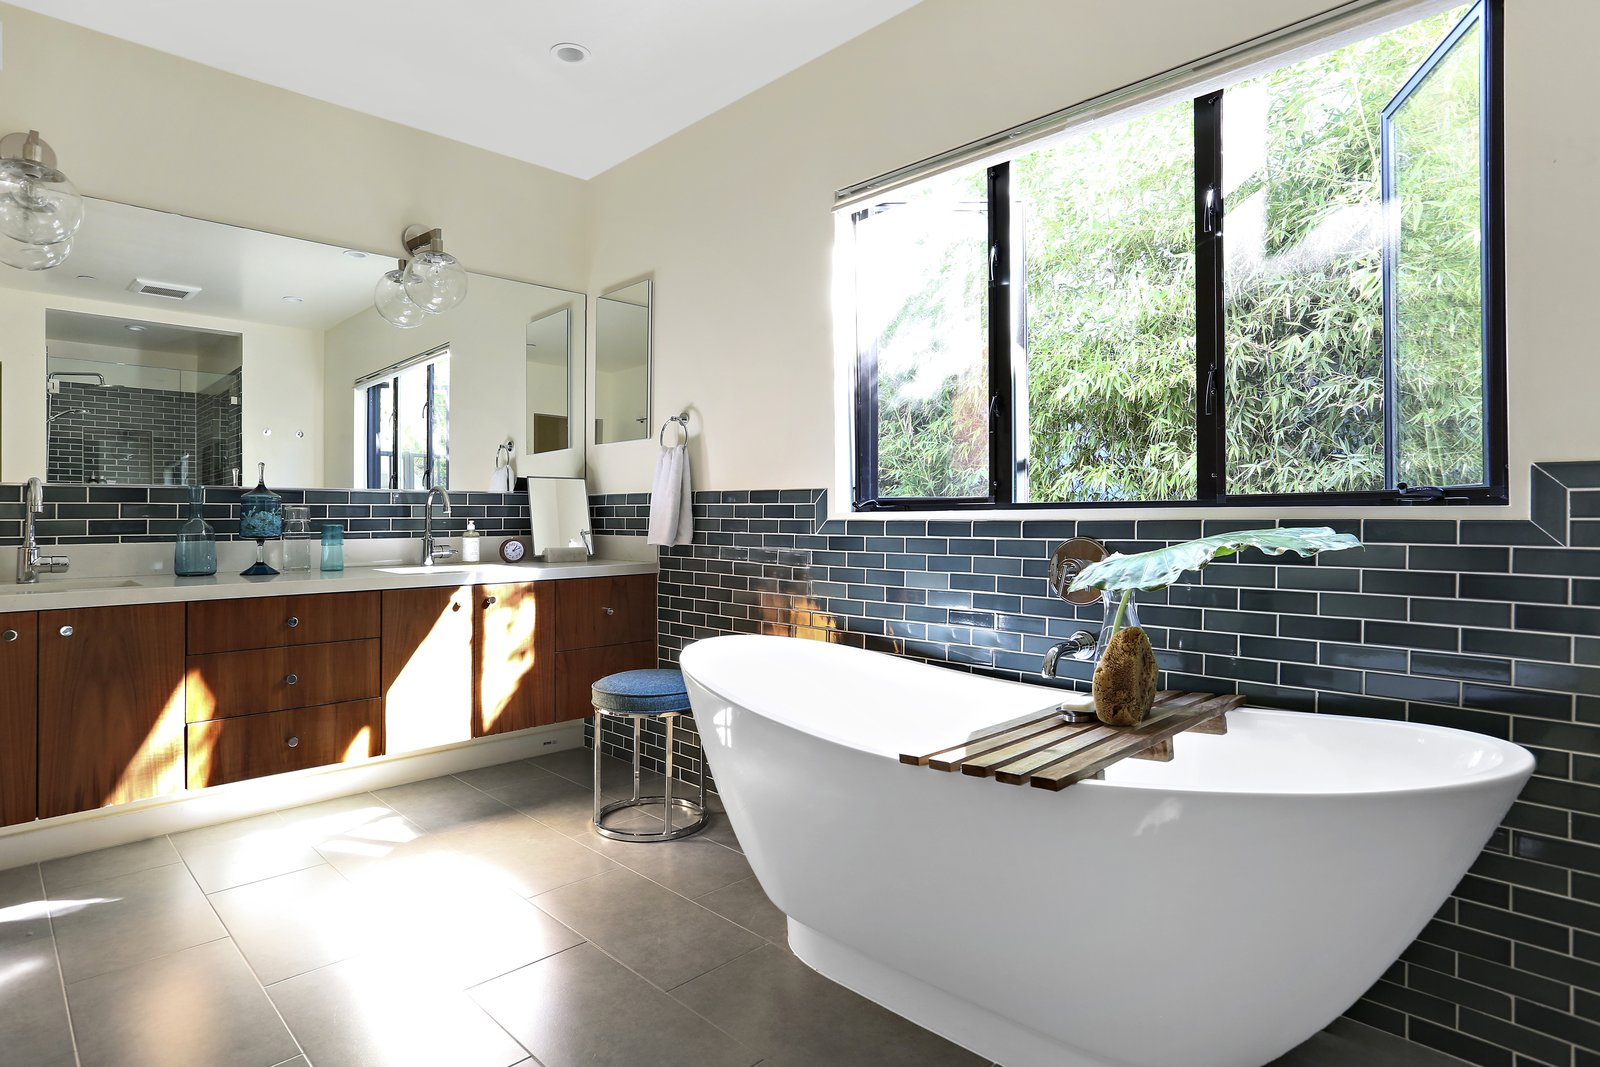 Bath Room, Freestanding Tub, Soaking Tub, Recessed Lighting, Drop In Sink, Wall Lighting, and Ceramic Tile Wall  Photos from A Silver Lake Home Built in 1939 Is Renovated From Top to Bottom